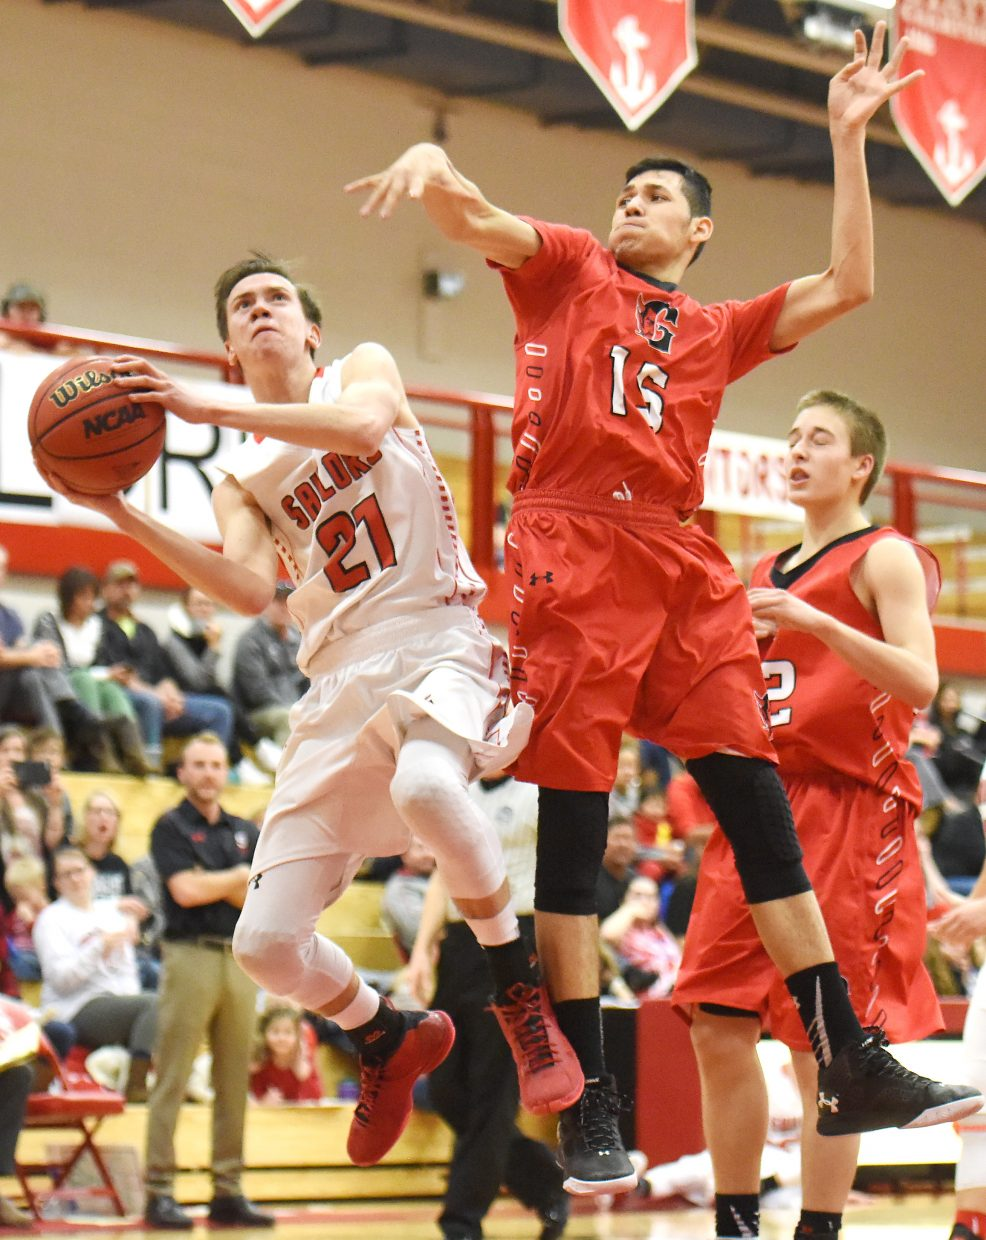 Steamboat's John Zalesky tries to get up a shot Saturday against Glenwood Springs.